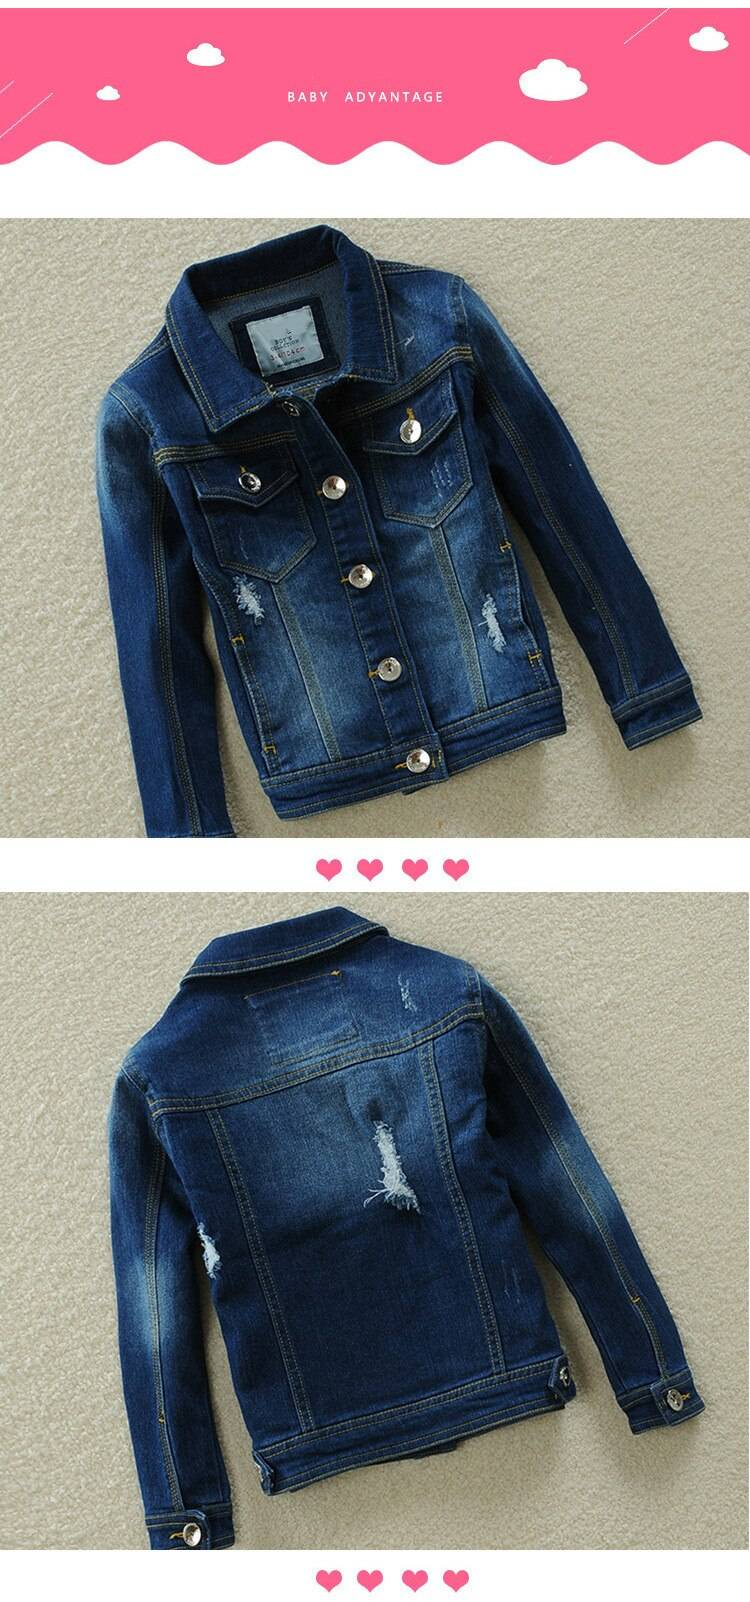 Baby Boys And Girls Denim Jacket 2020 Spring Autumn Jackets Unisex Fashion Outerwear Coats For Kids Children Jacket Clothes Y46